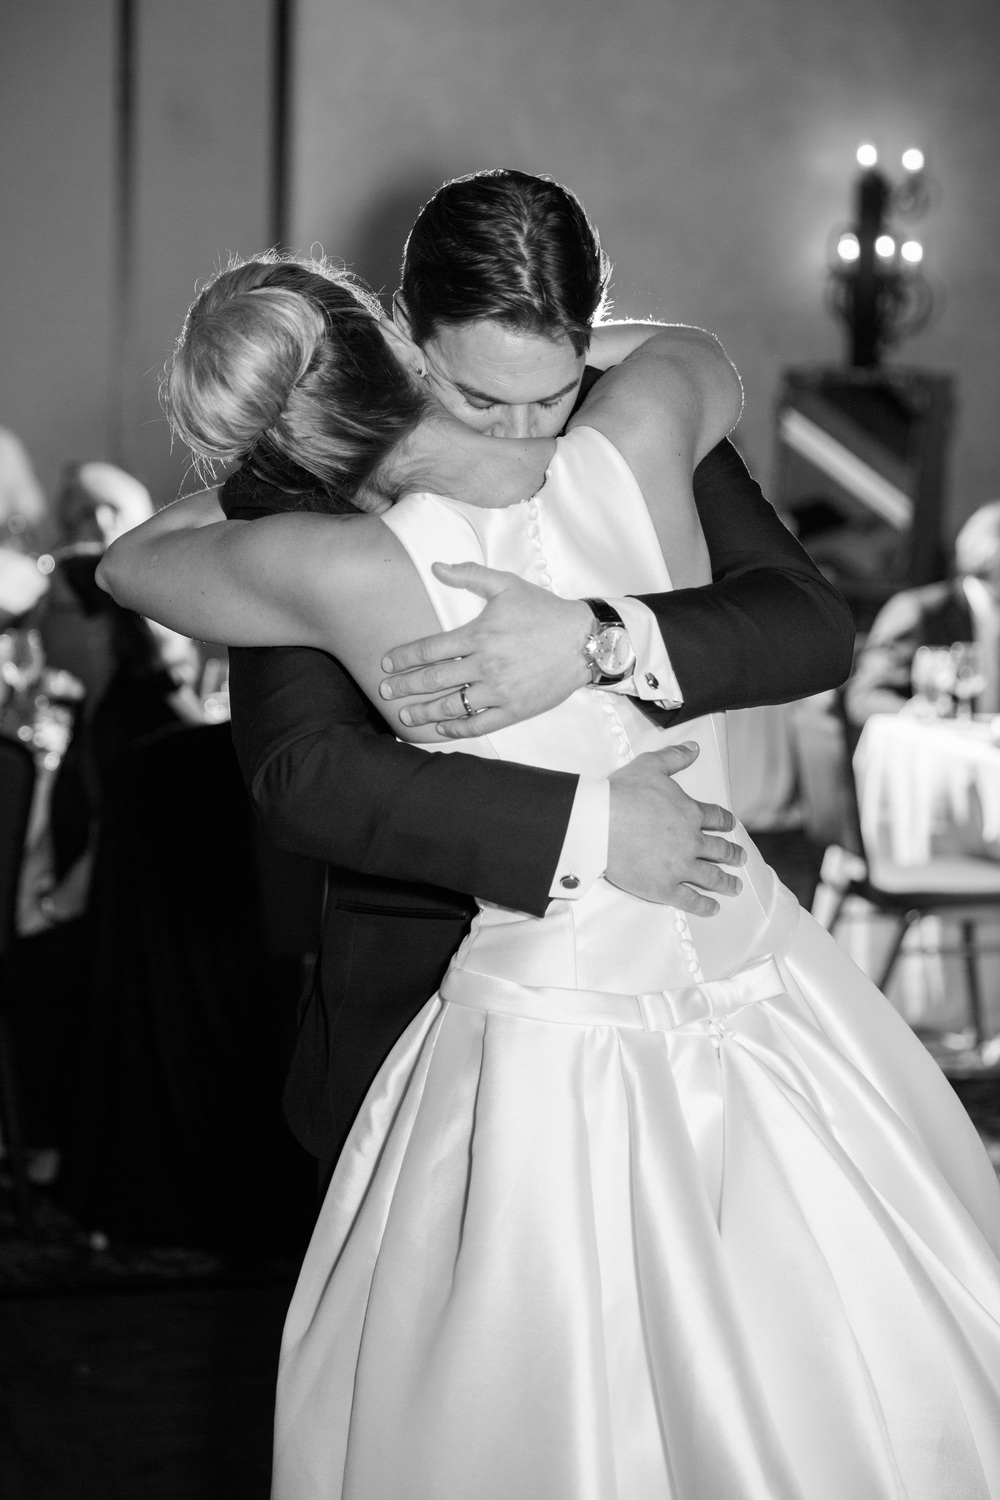 Emotional first dance in black and white